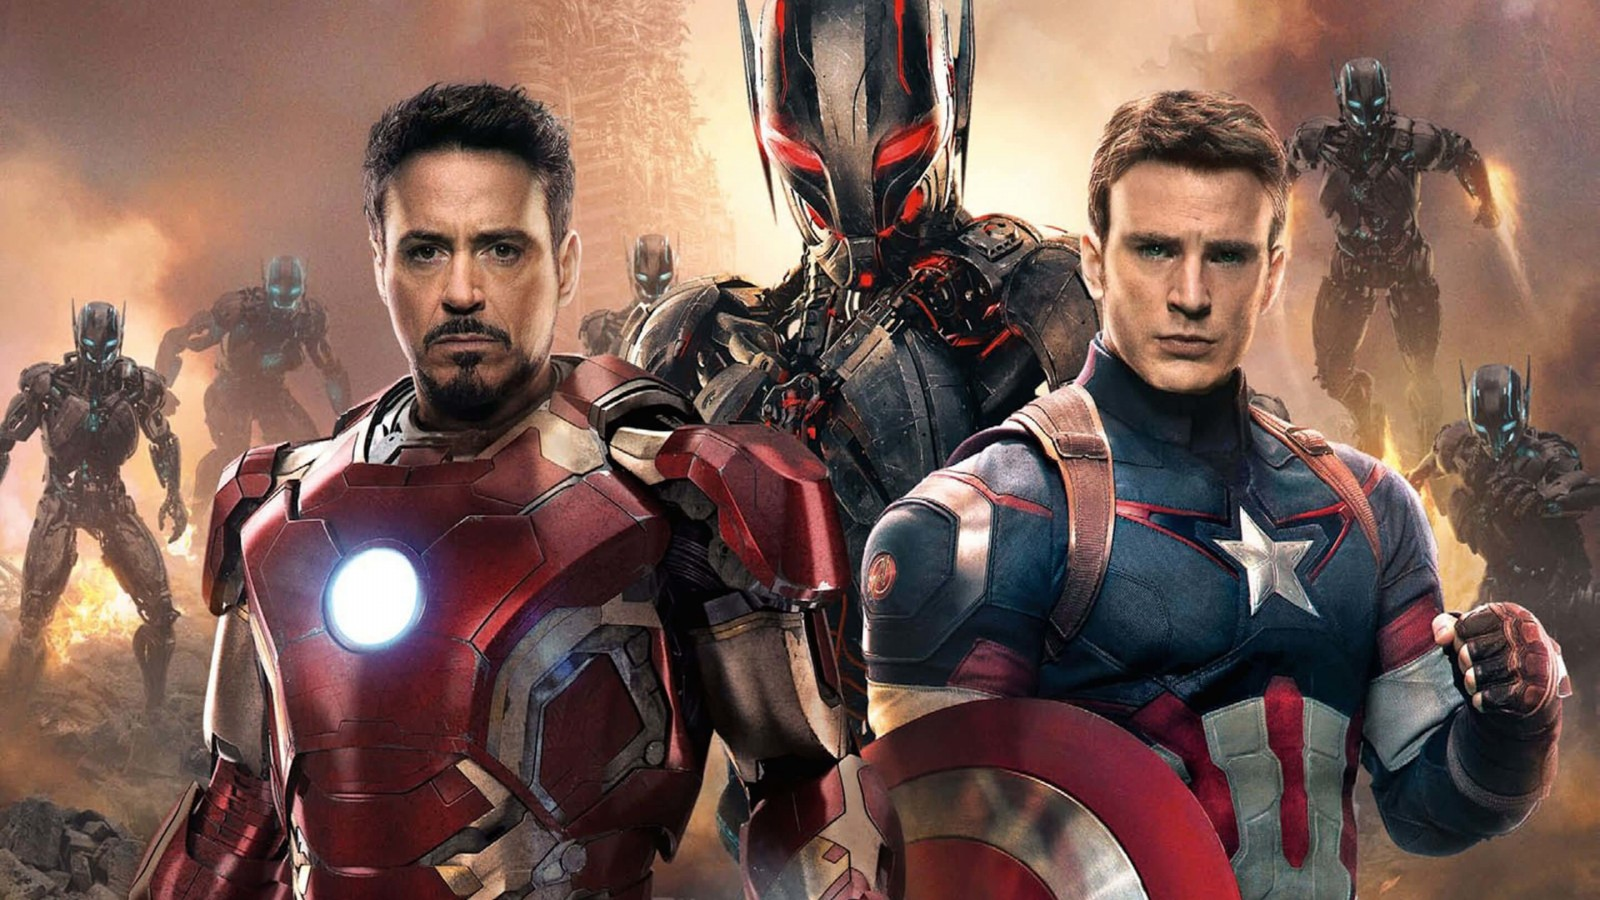 The Avengers: Age of Ultron - Iron Man and Captain America Wallpaper for Desktop 1600x900